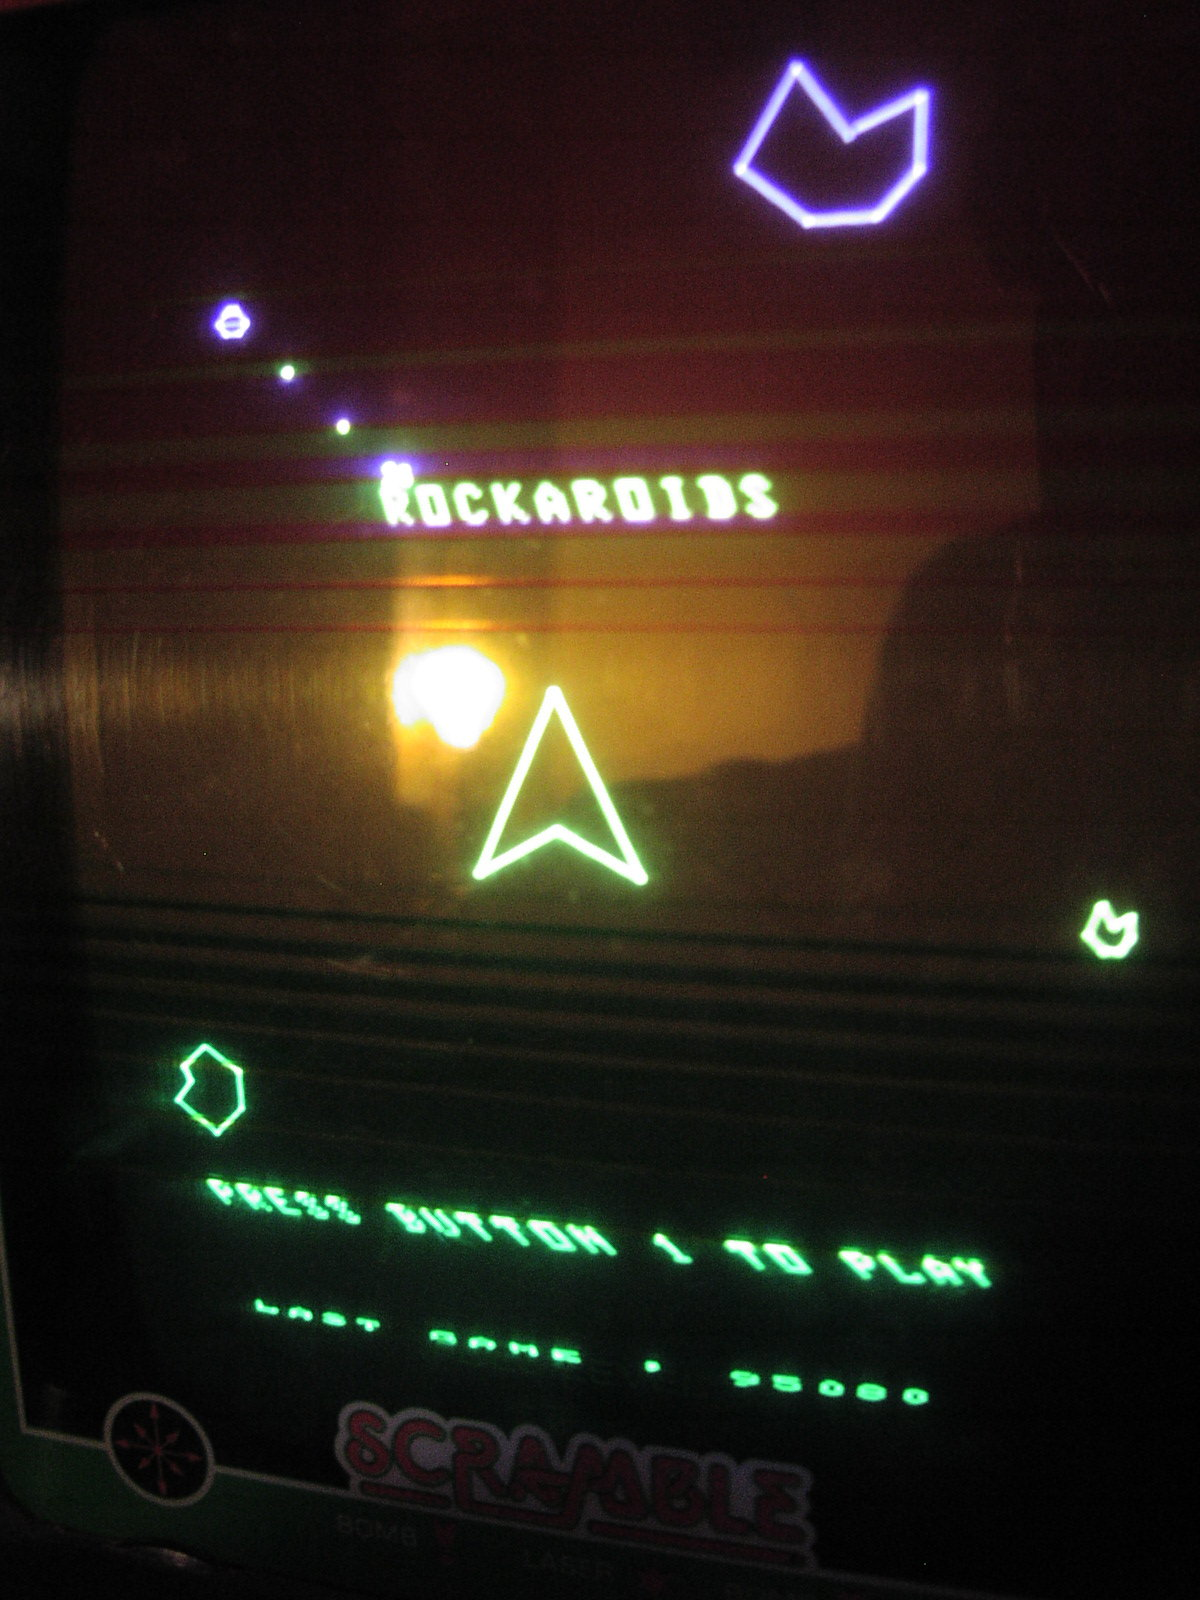 DarrylB: All Good Things: Rockaroids (Vectrex) 95,080 points on 2014-11-11 23:19:37